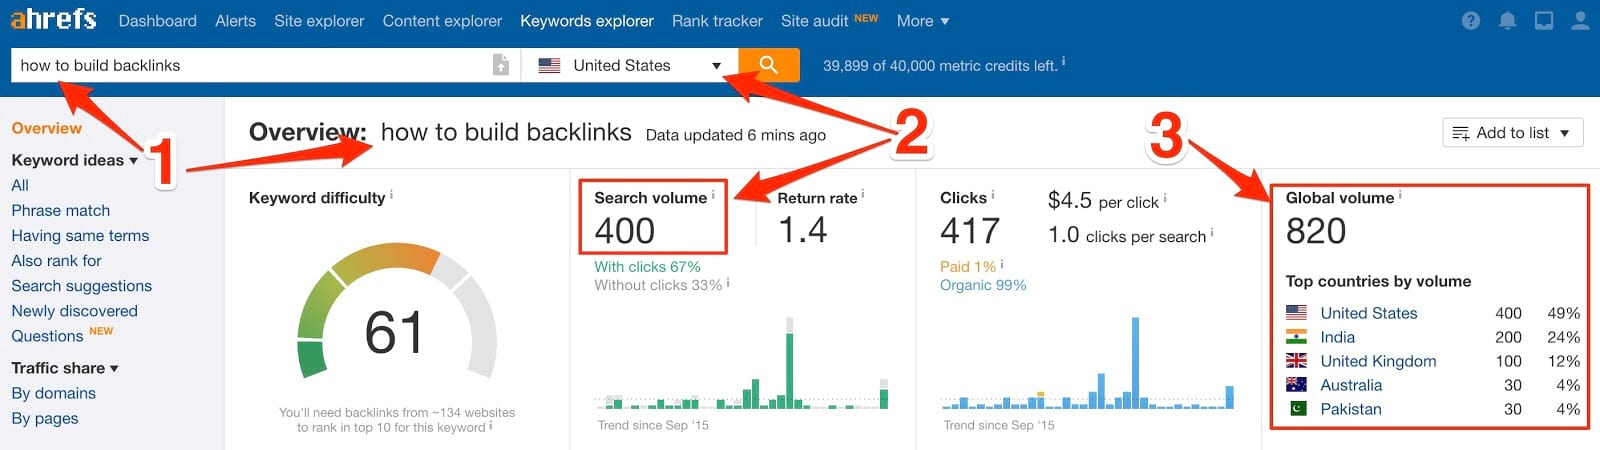 Keywords for how to build backlinks